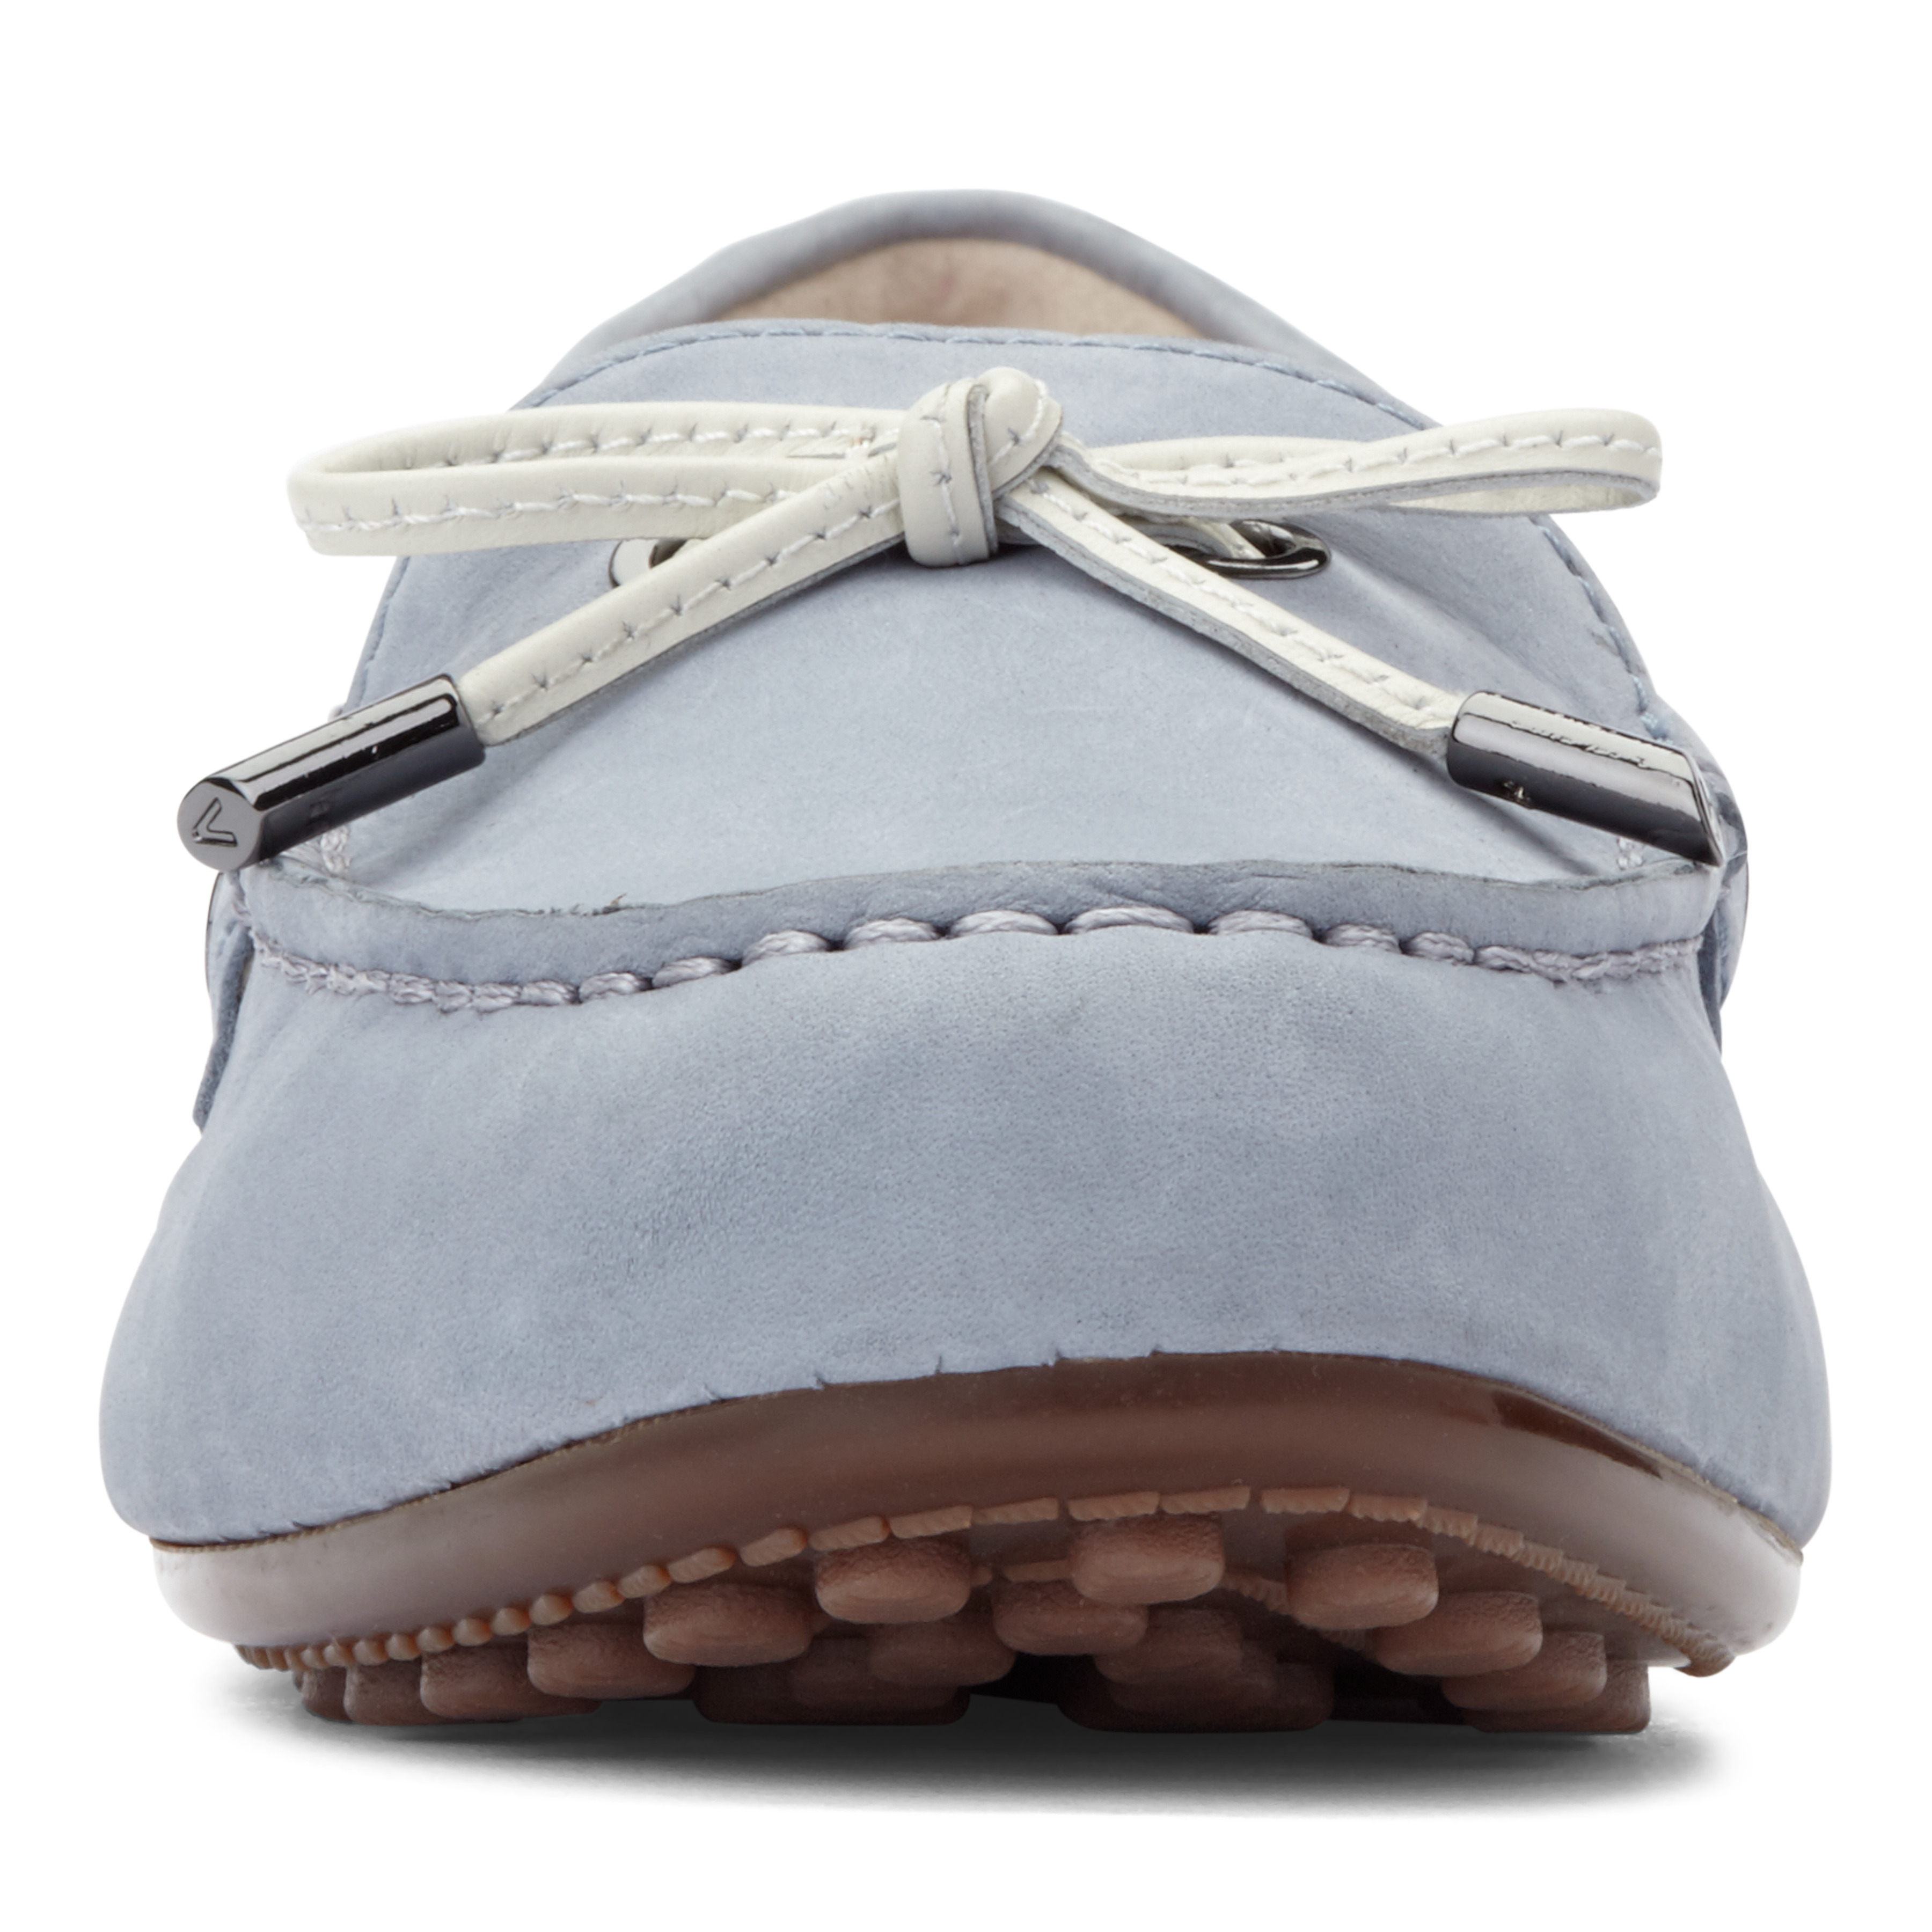 Vionic-Womens-Honor-Virginia-Leather-Moccasin-Comfort-Loafers thumbnail 12